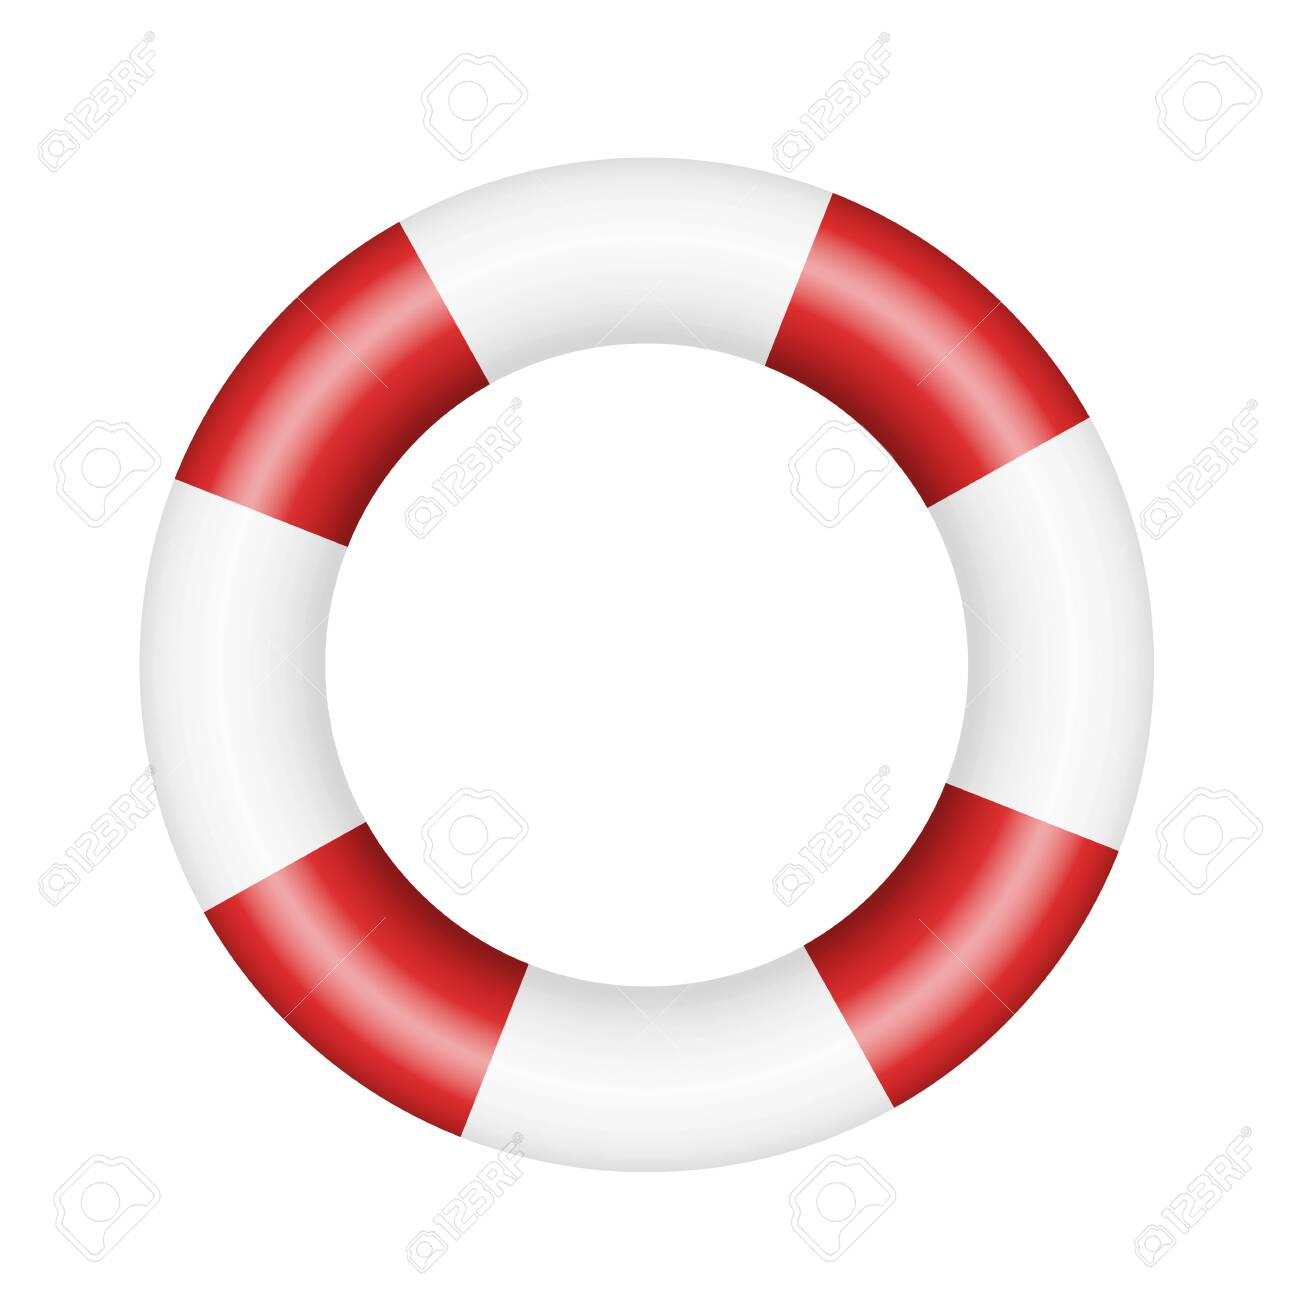 Realistic illustration of lifebuoy. Red and white circle isolated on white background - vector - 136890689